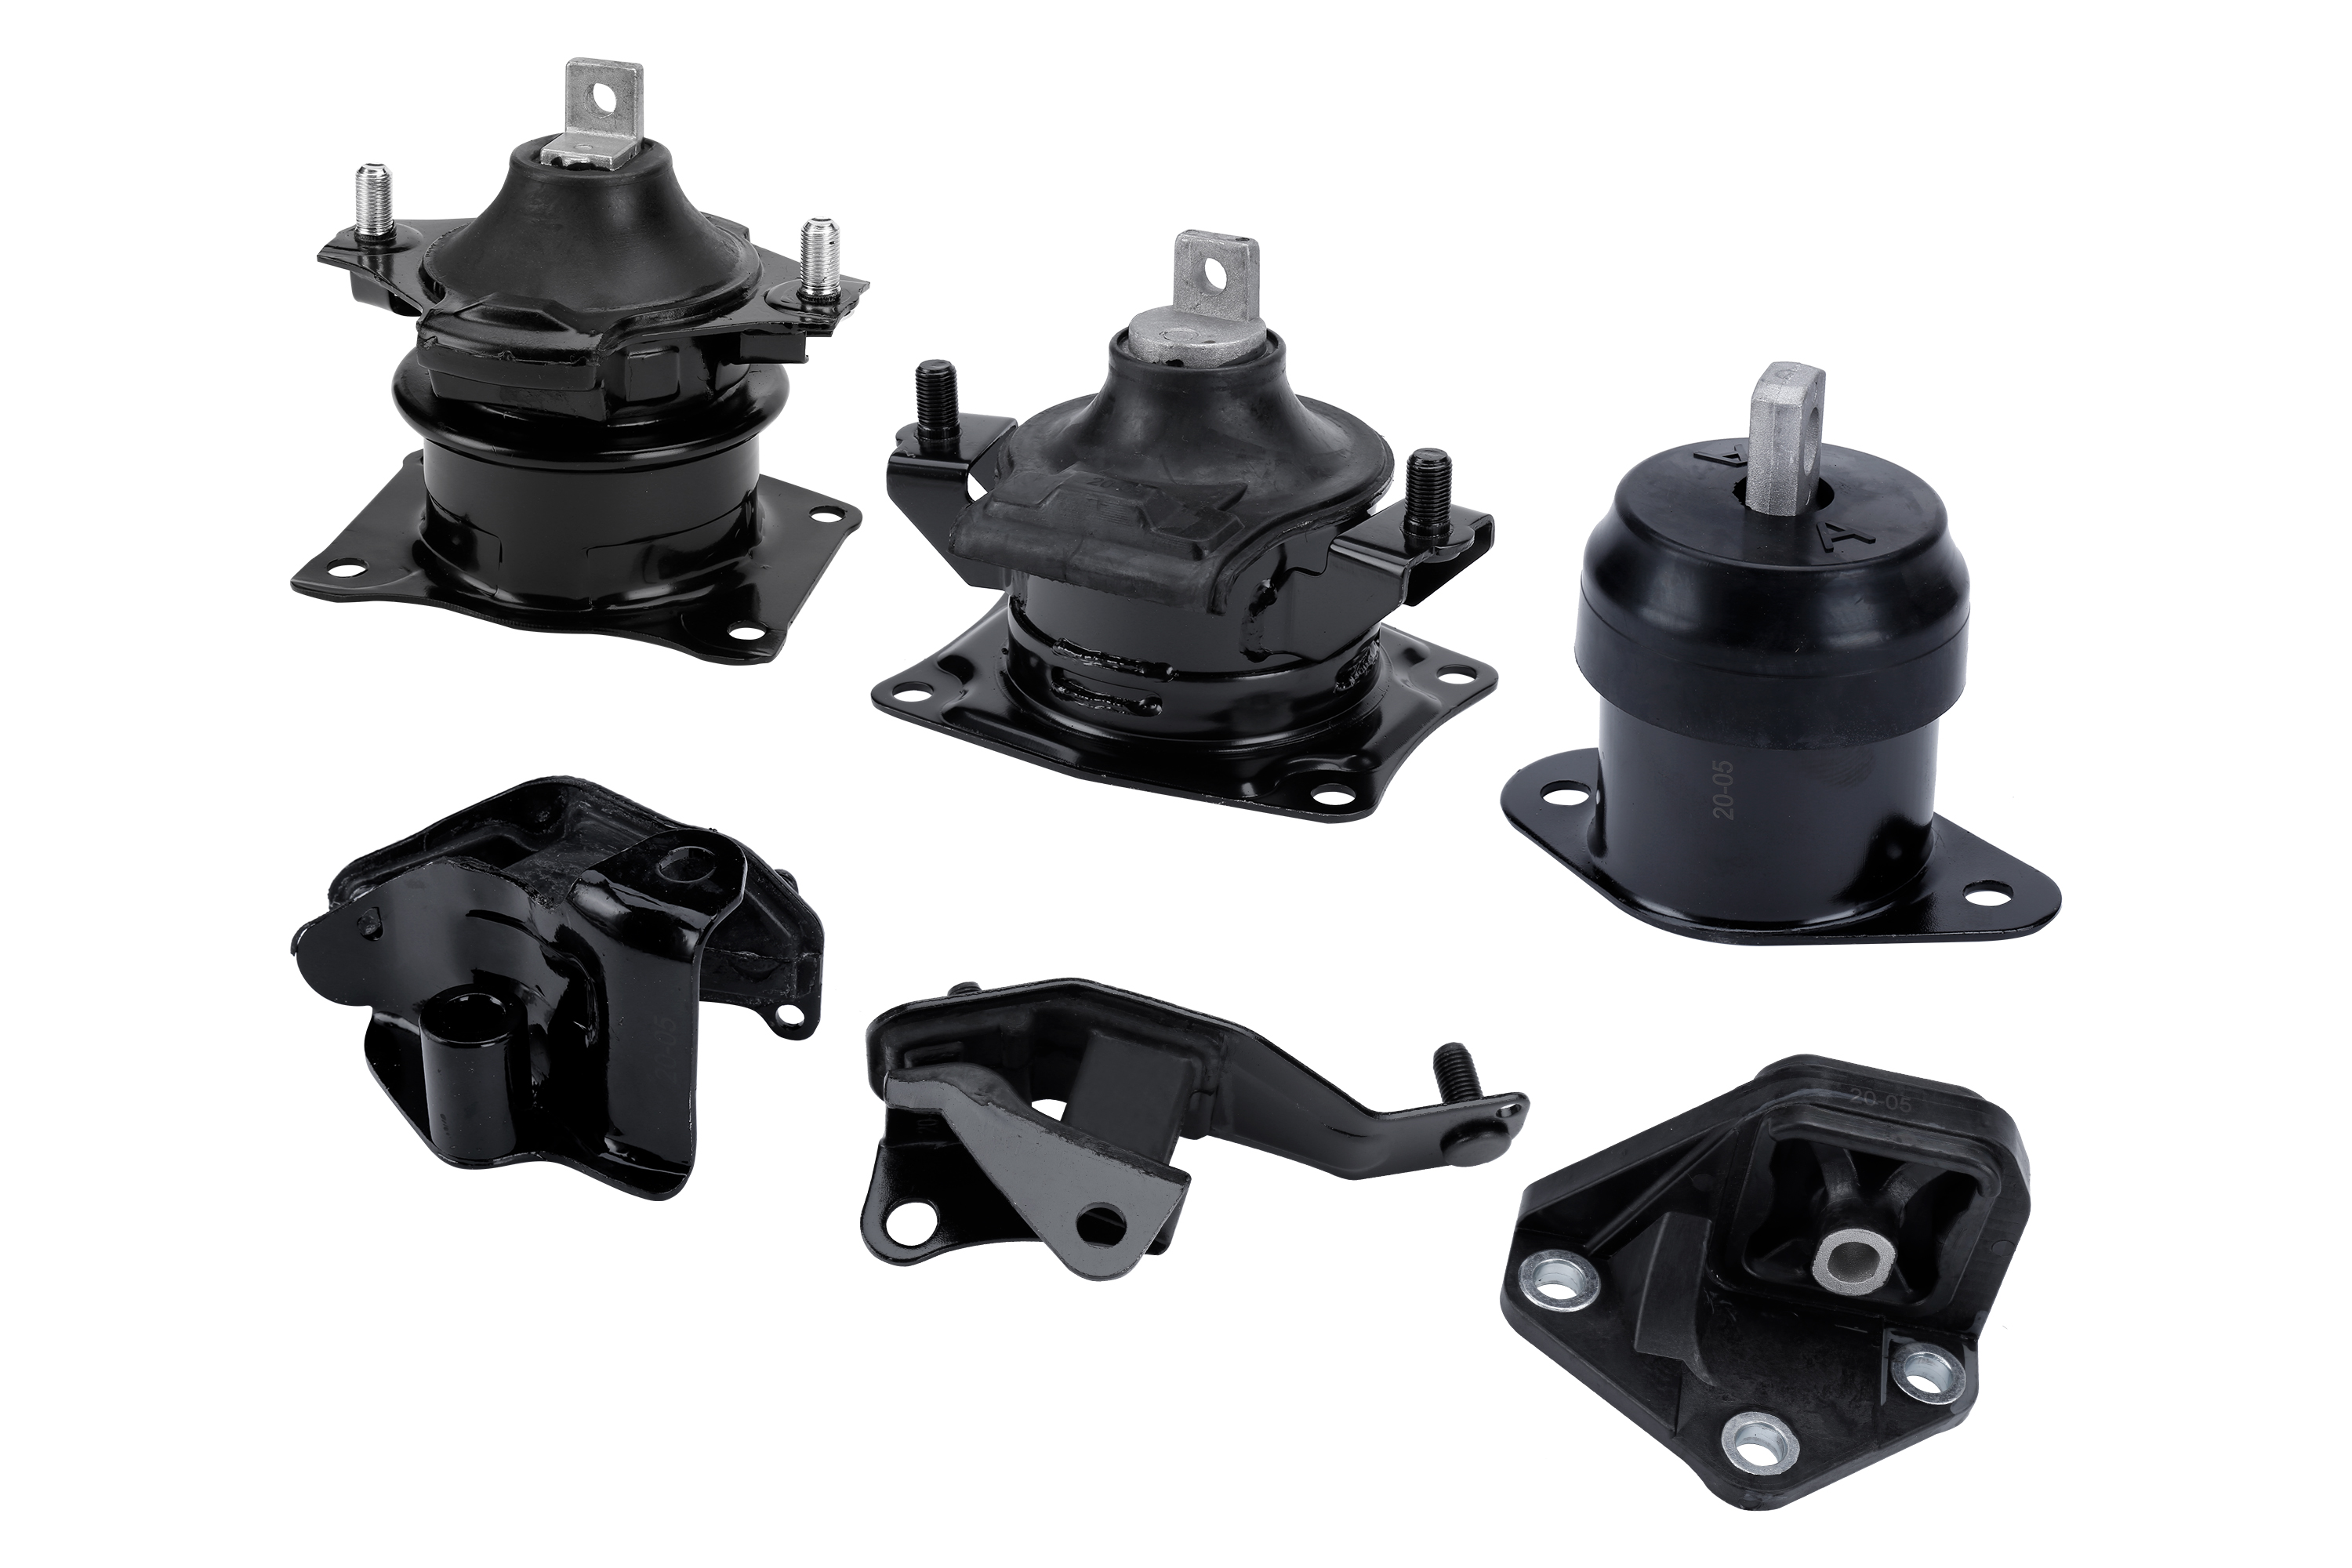 Engine Motor and Transmission Mount Set of 6 - Fits Honda Accord 2003-2007 2.4L Image